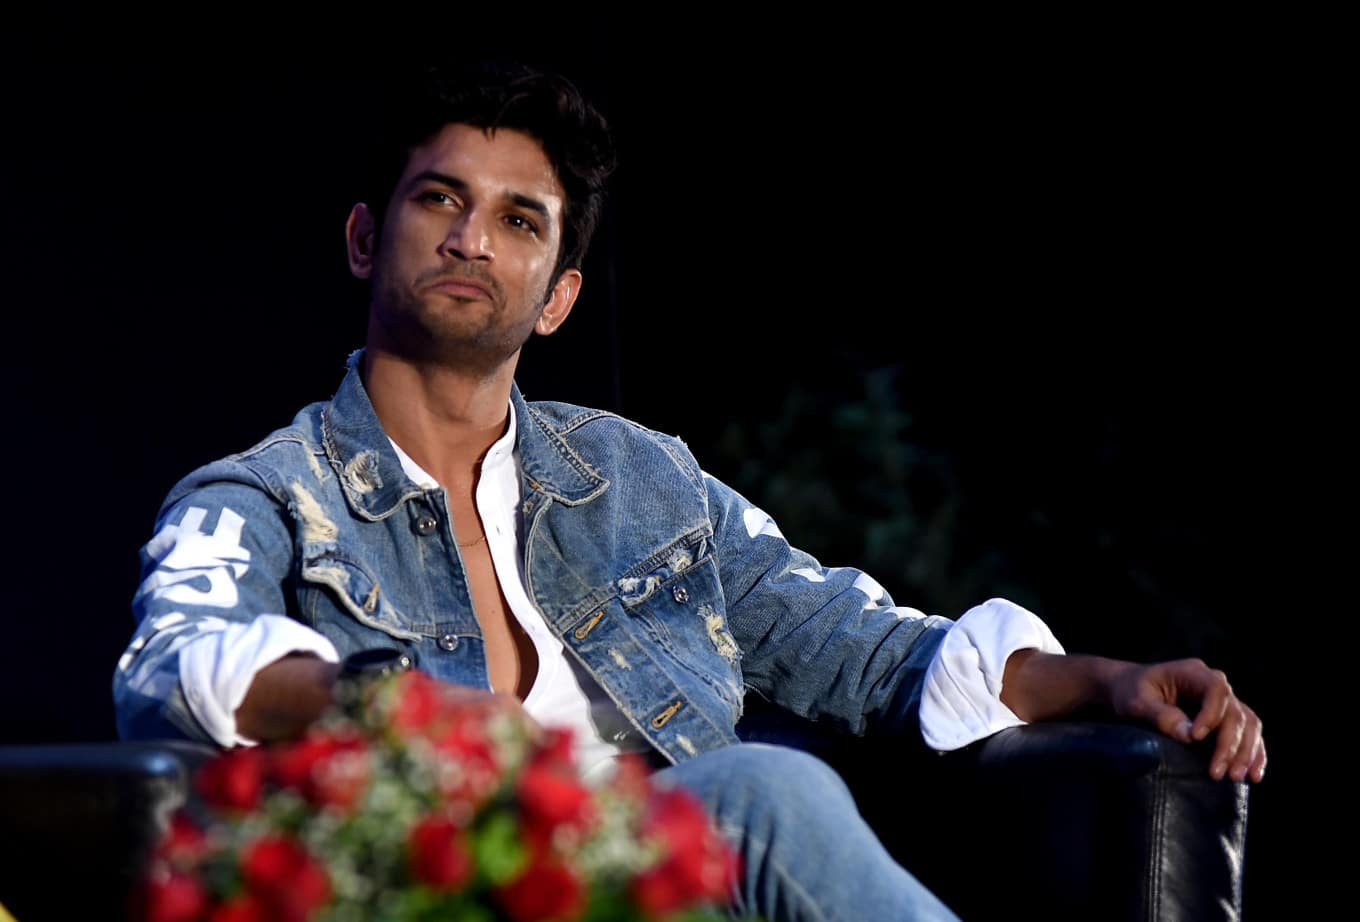 'Suicide Or Murder?': Motion Poster Of Film Based On Sushant Singh Rajput's Life Released